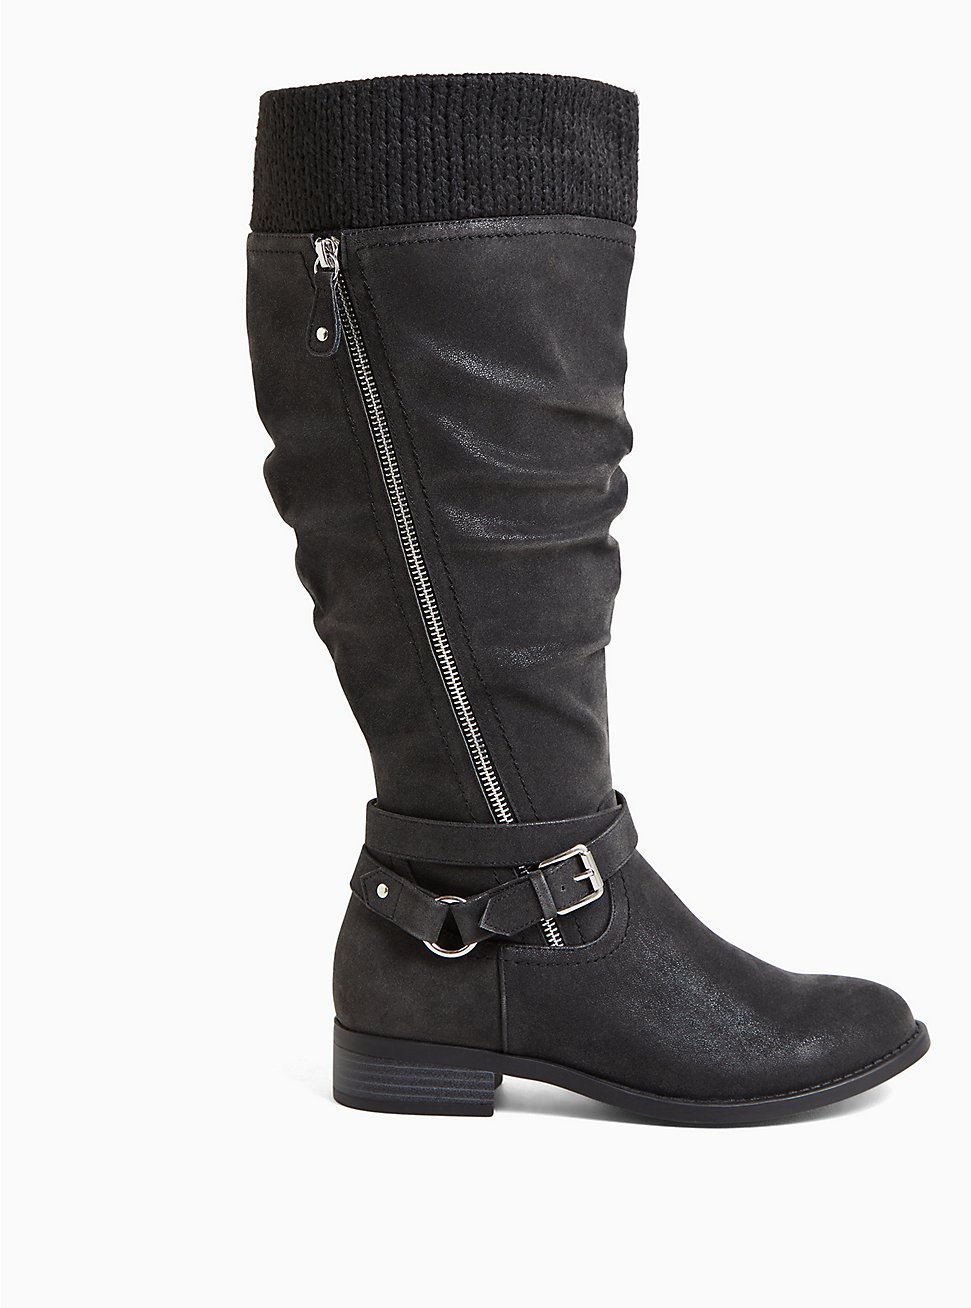 Black Oiled Sweater Trimmed Buckle Knee-High Boot (WW & Wide to Extra Wide Calf), BLACK, hi-res